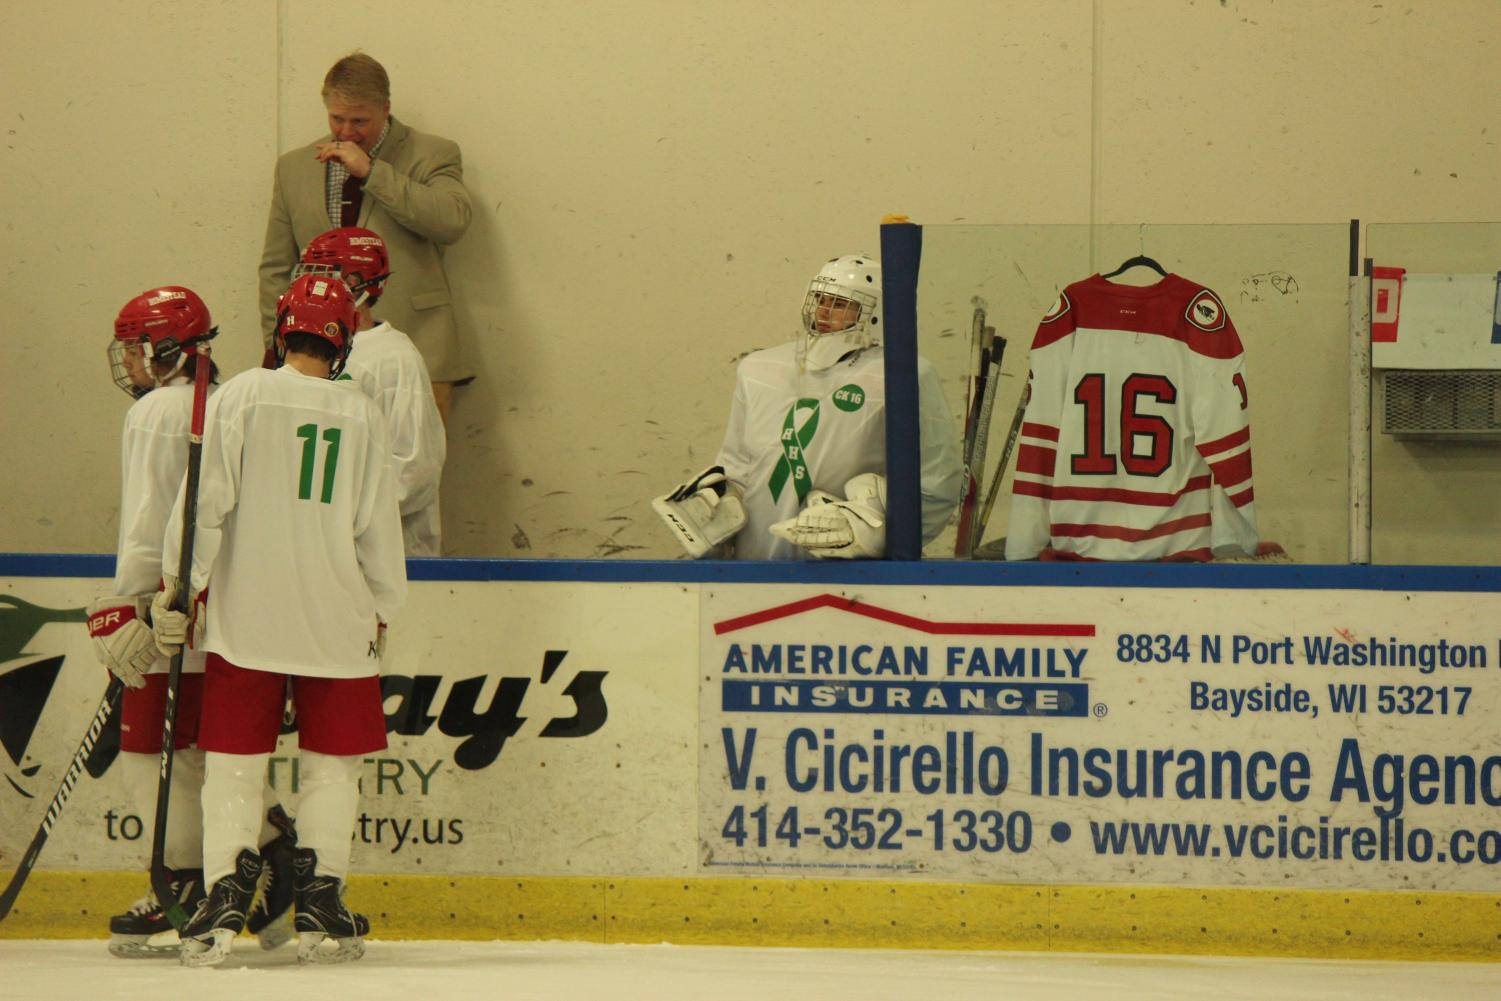 Jersey #16 is displayed through the glass on the ice rink during the game in remembrance of Cam Kranich.